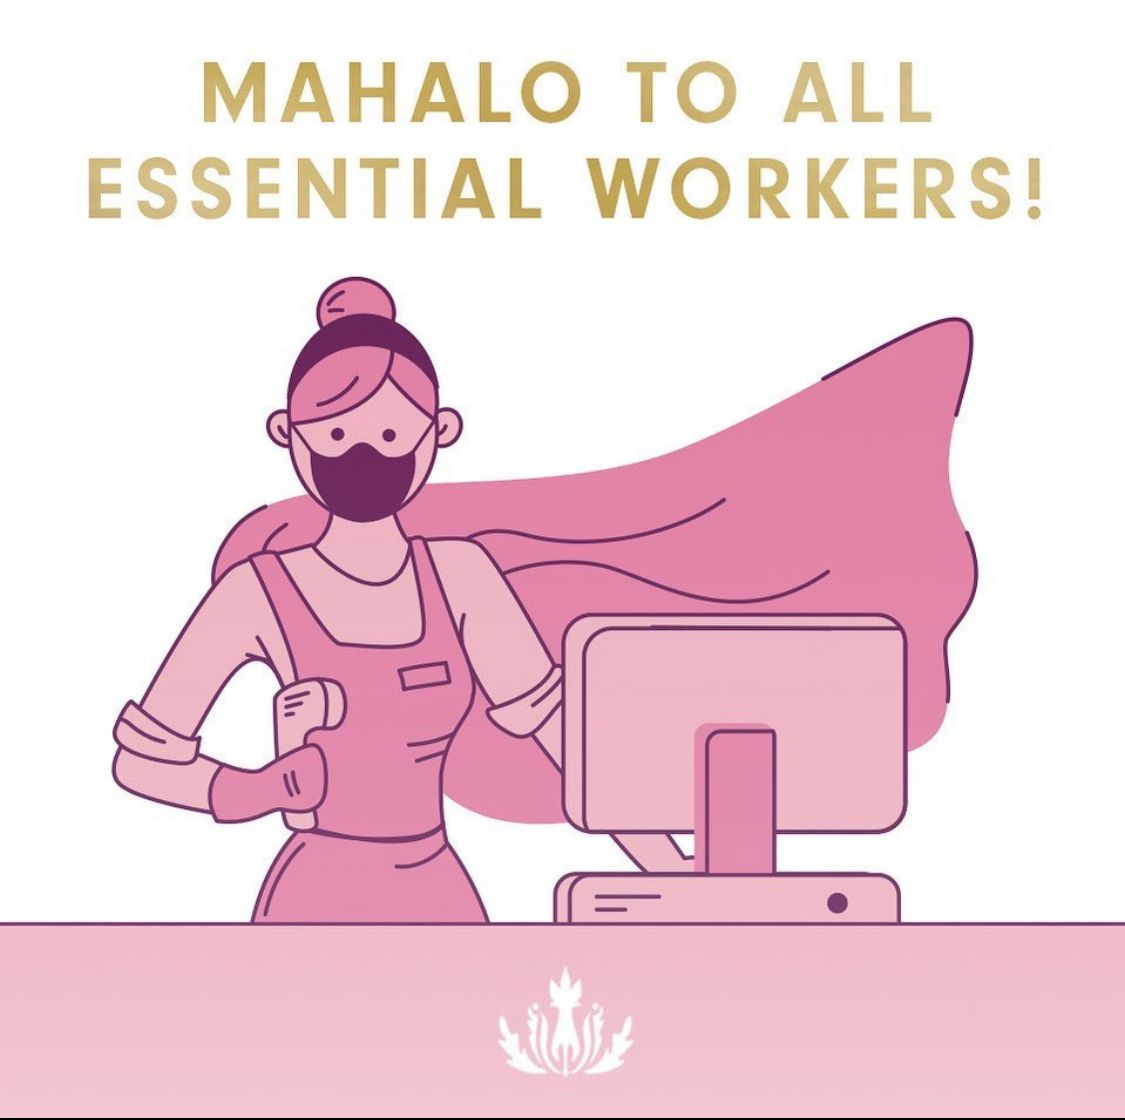 Mahalo to all Essential Workers